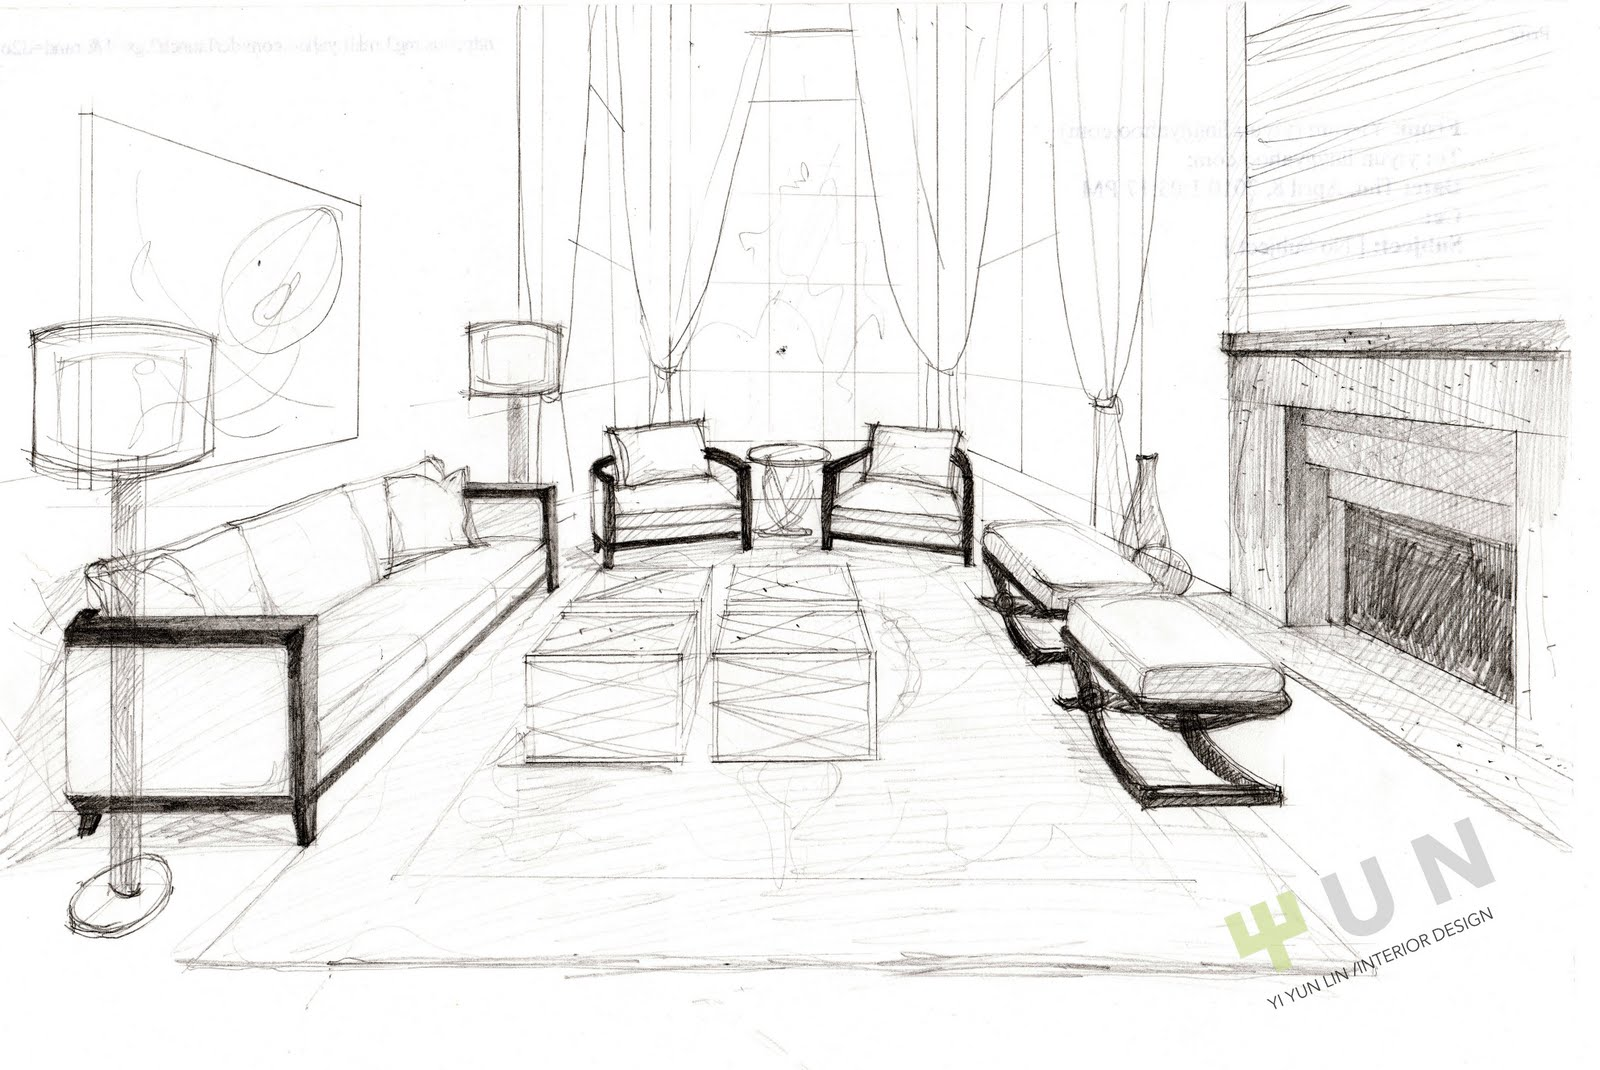 Interior design sketches wallpress 1080p hd desktop for Drawing room designs interior